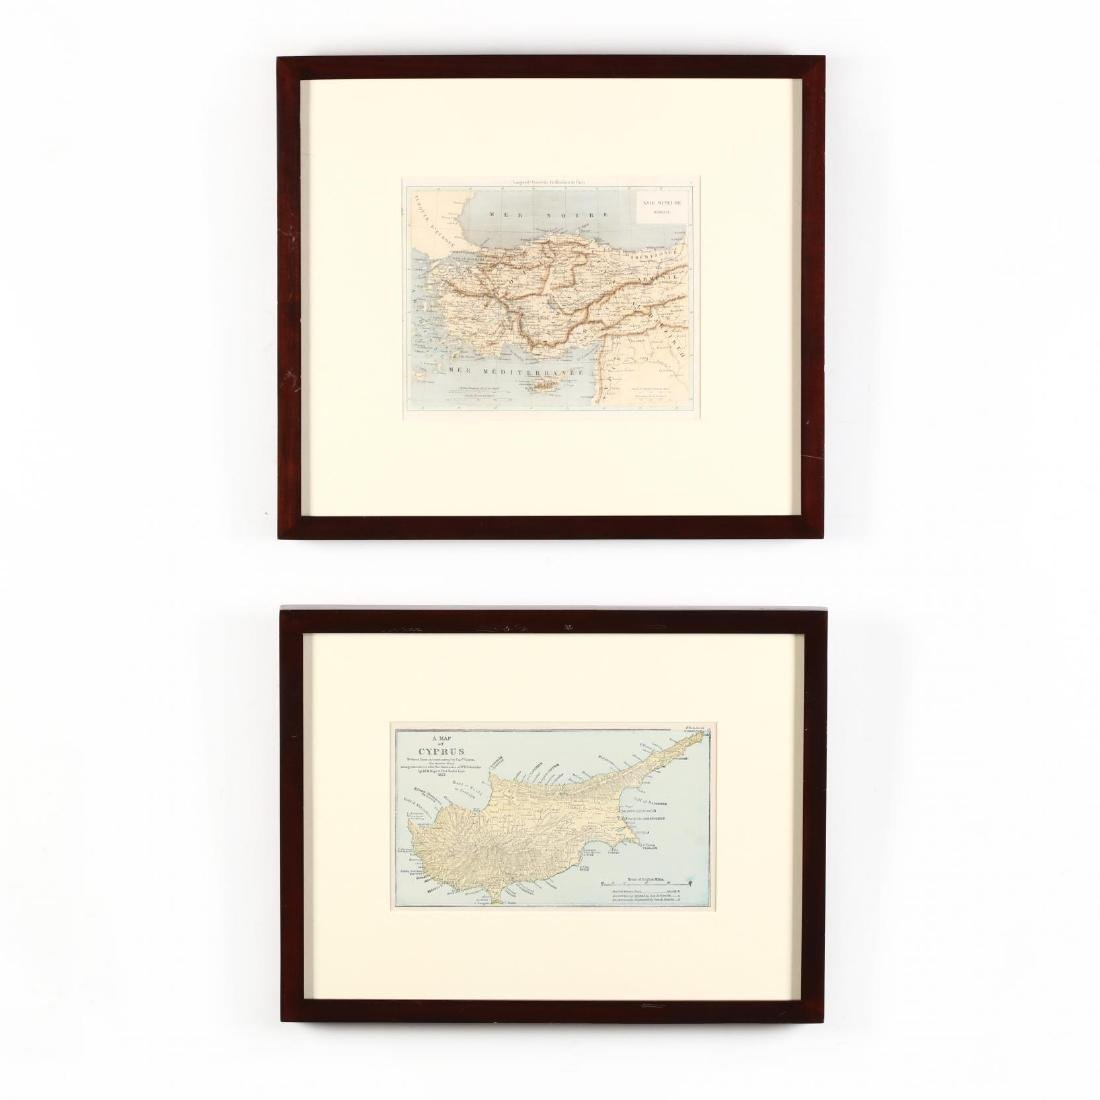 Two 19th Century Maps of Cyprus